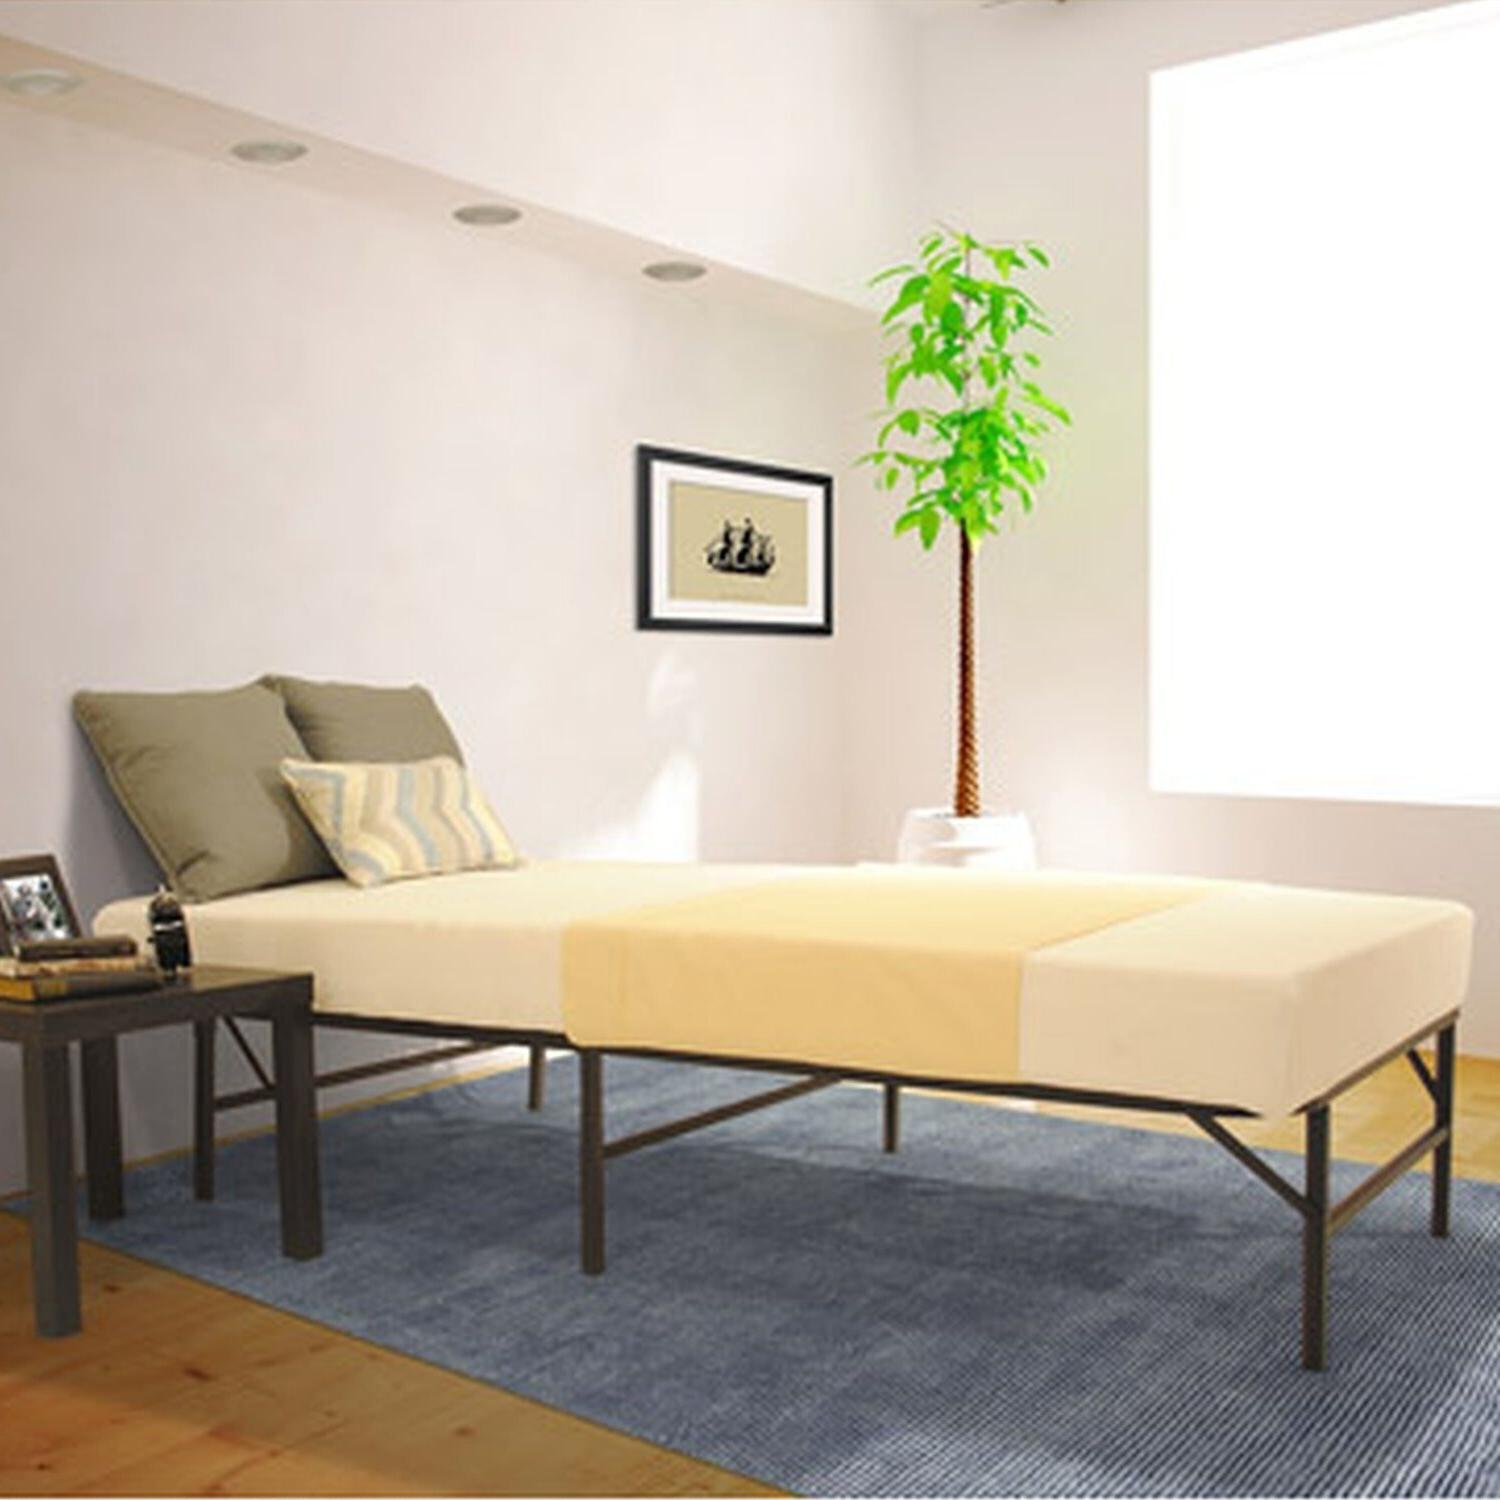 Twin XL BED FRAME Lift Remote Control Base